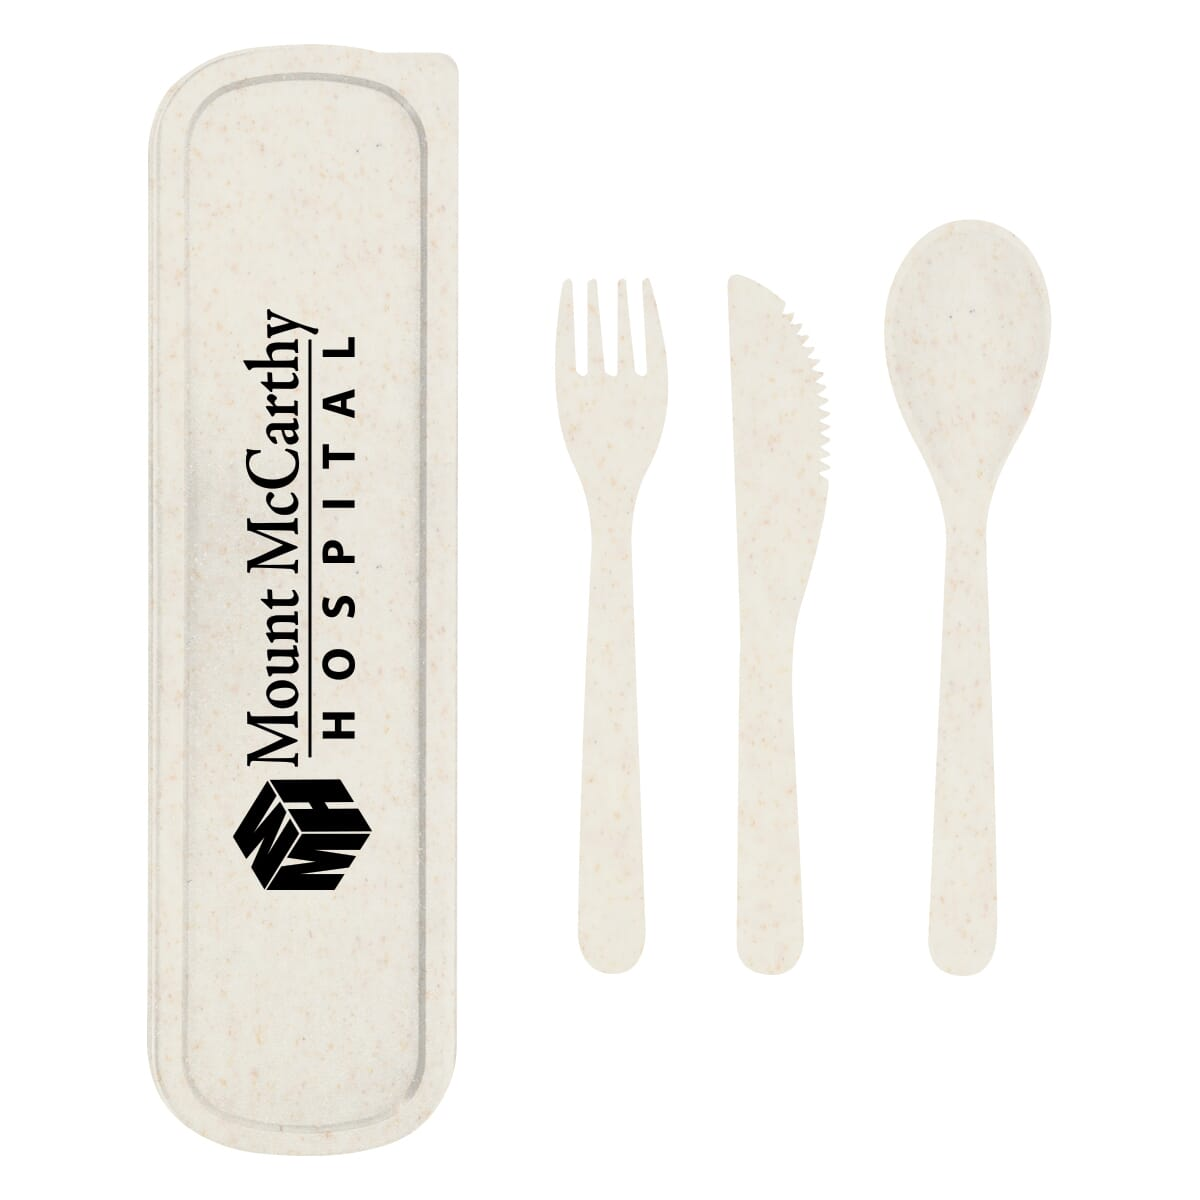 reusable utensil set made of sustainable wheat straw material